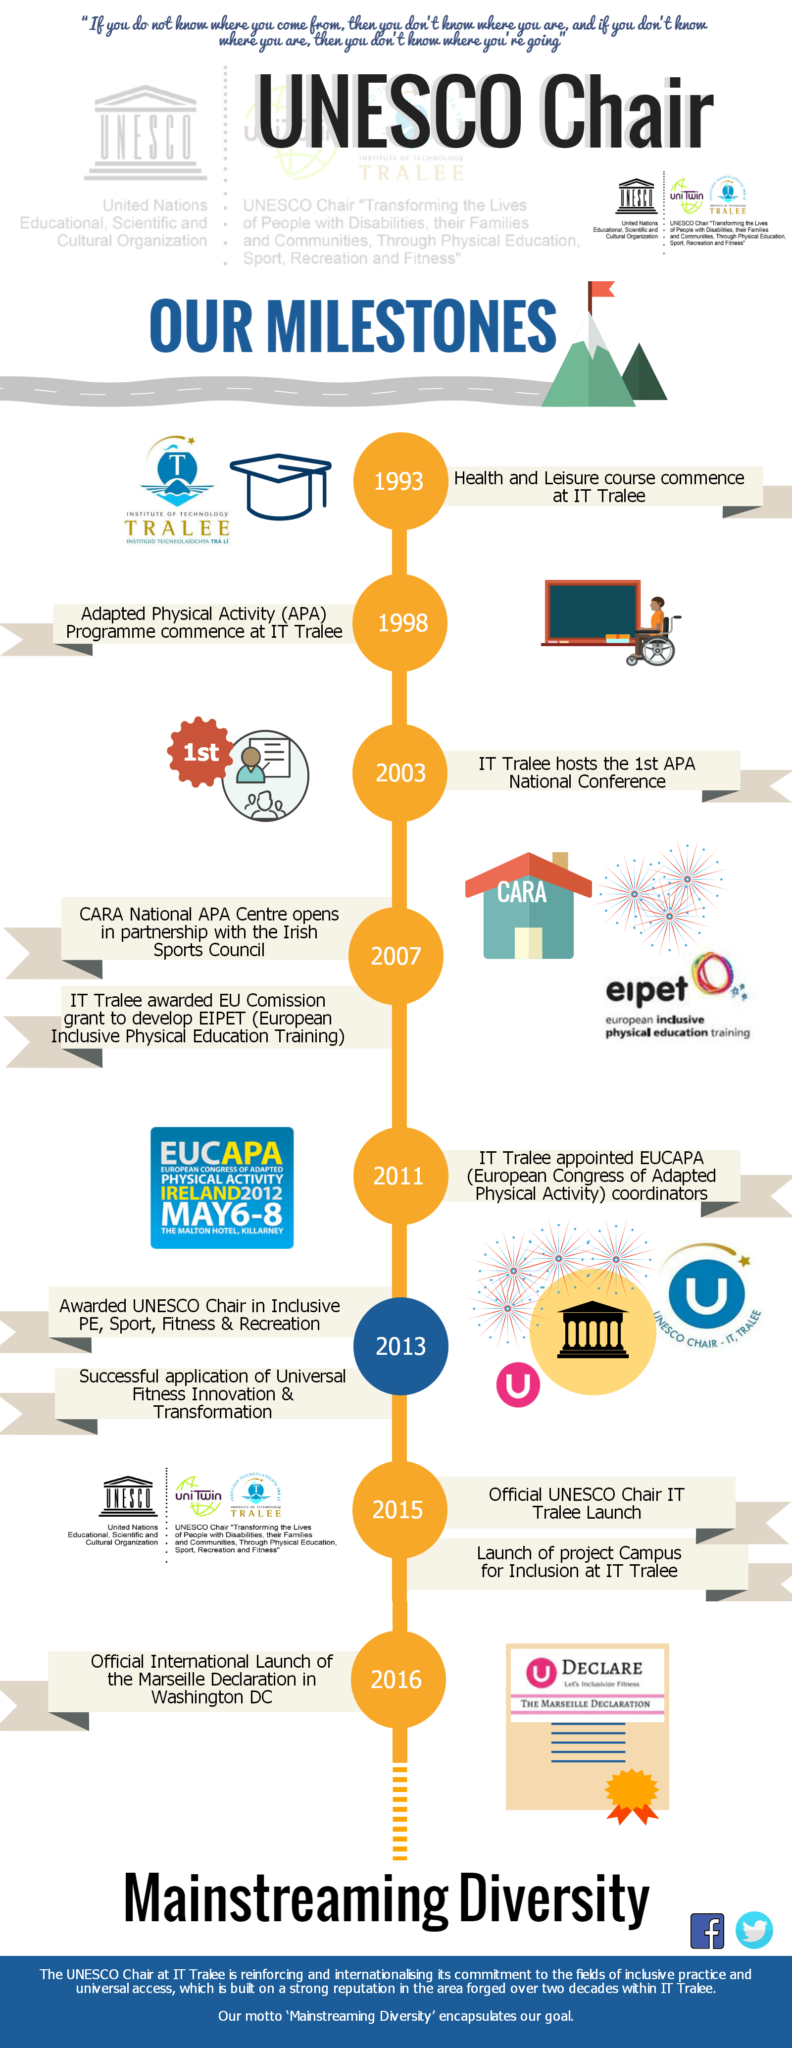 UNESCO Chair timeline